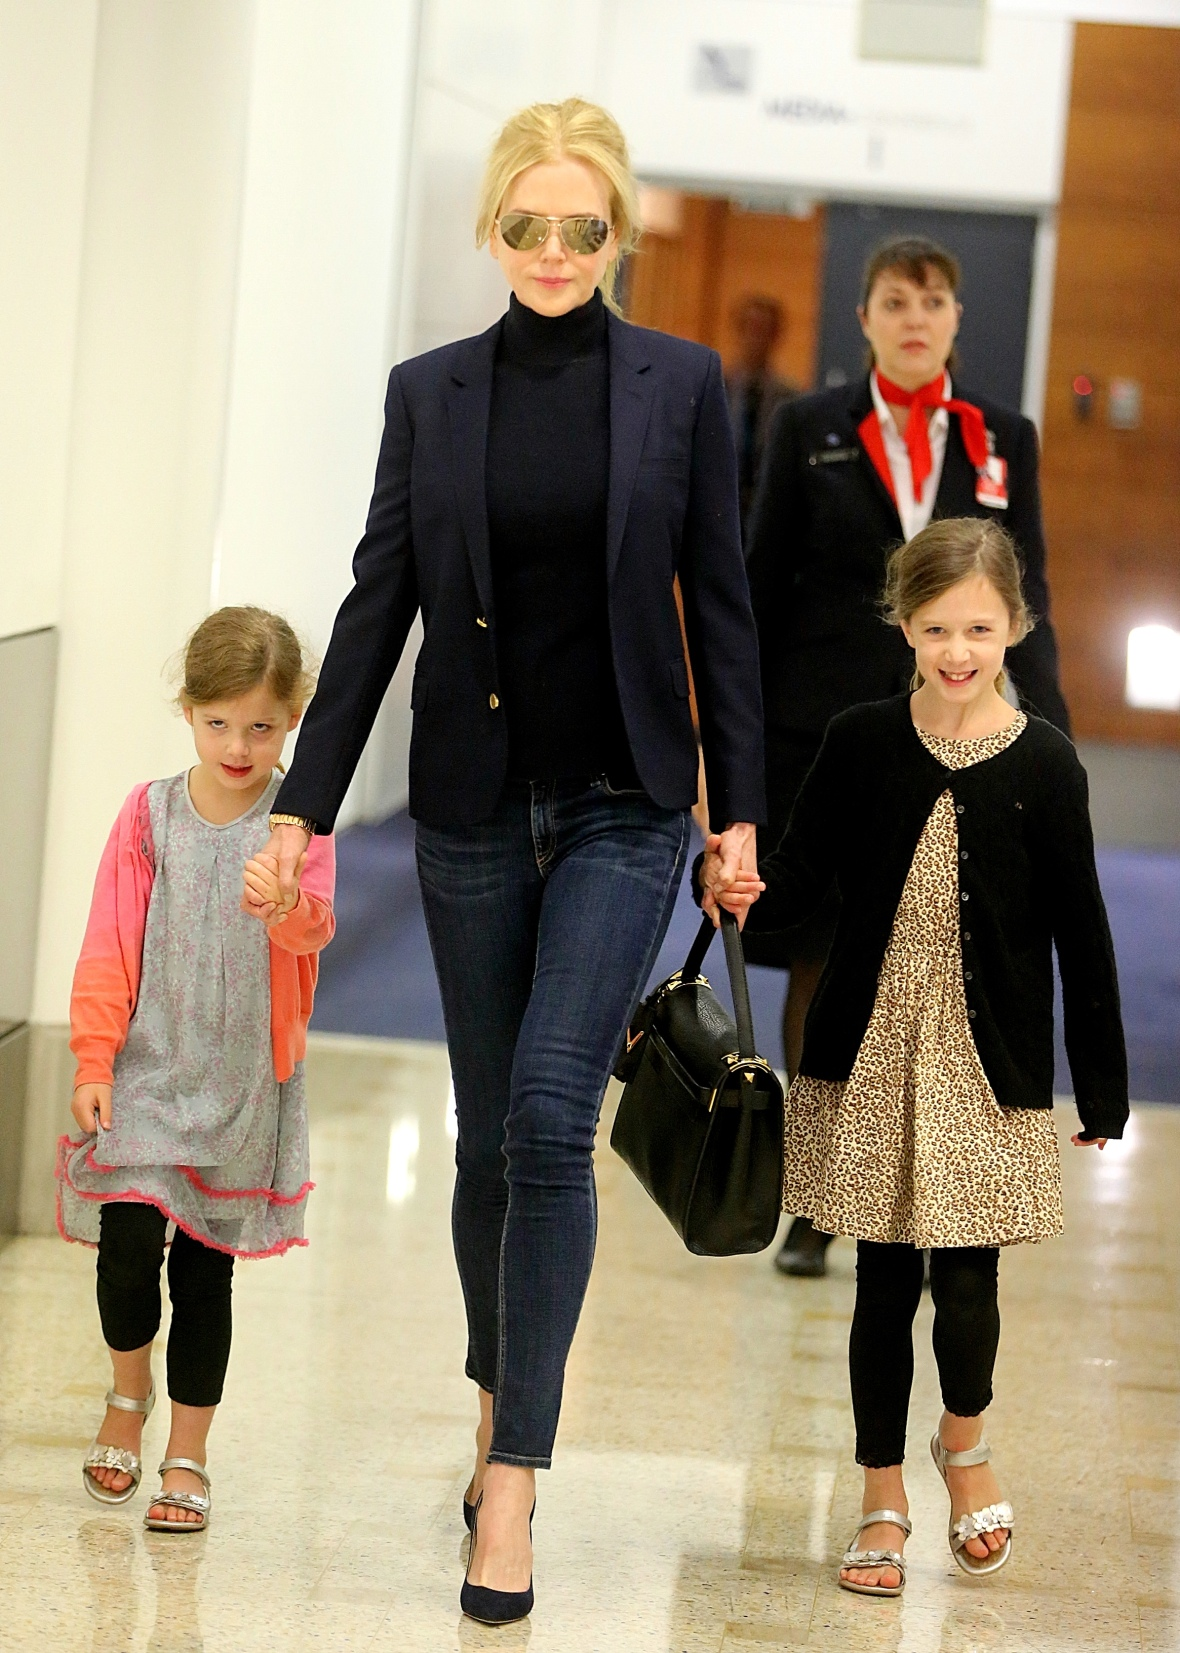 nicole kidman's daughters getty images